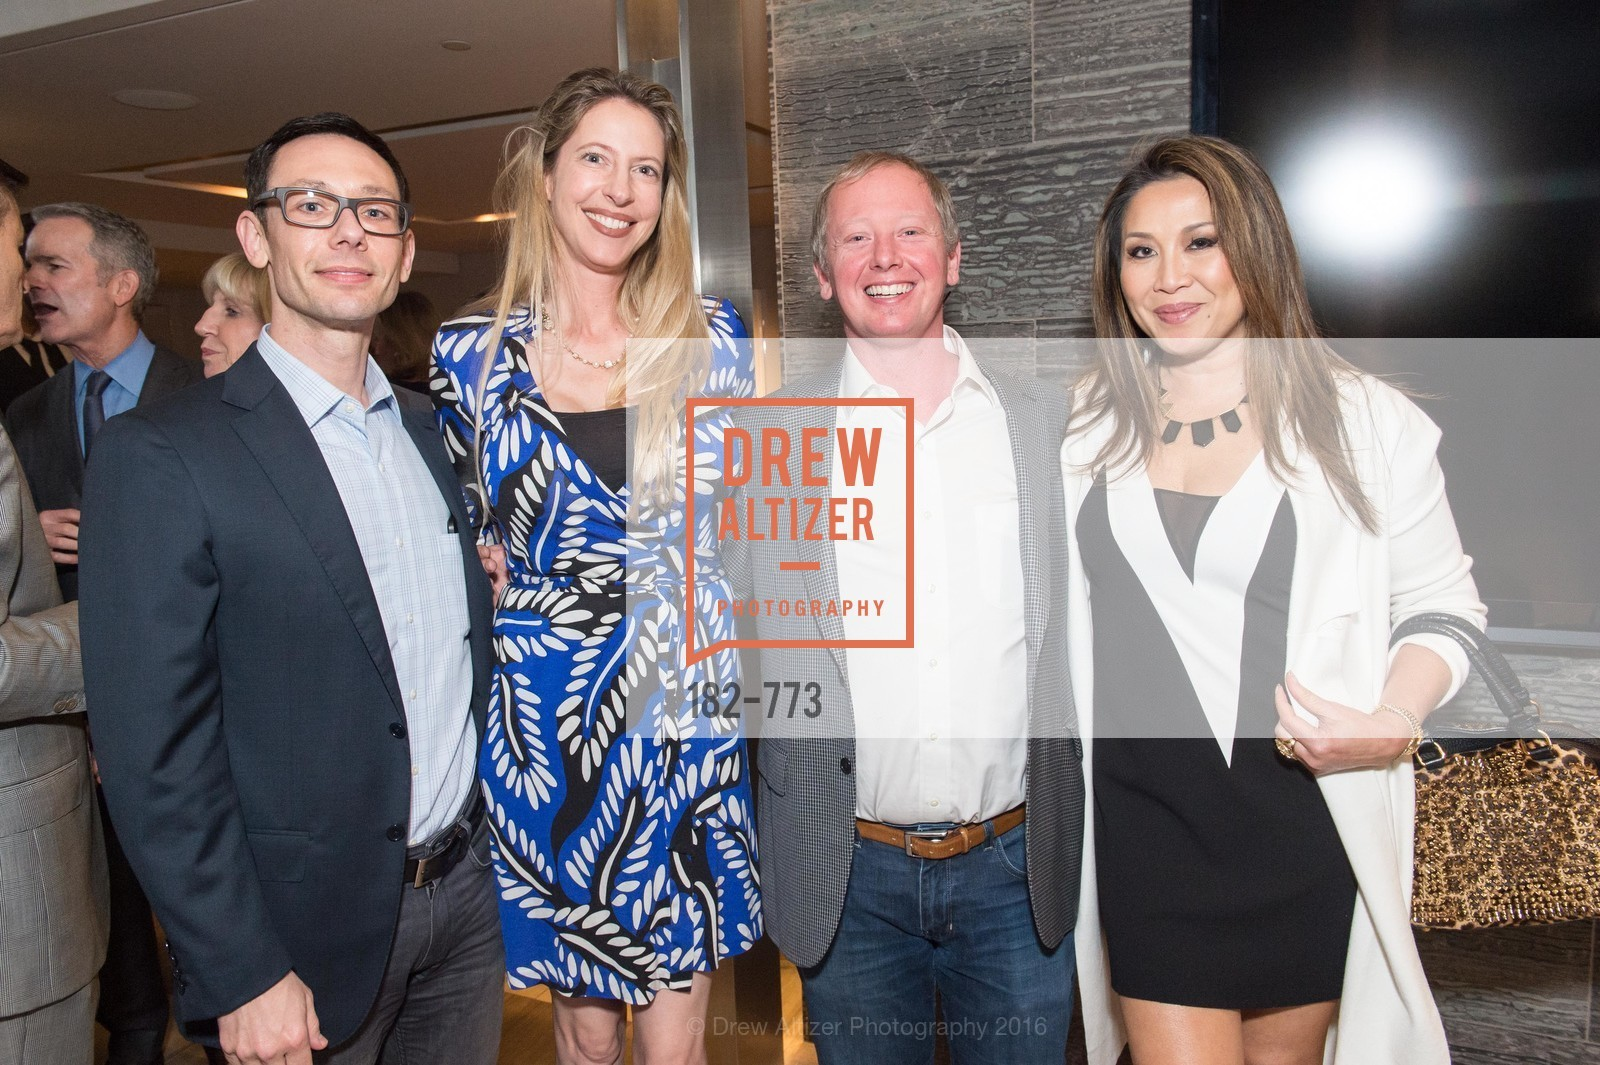 Ludovico Mazzola, Allison Fortini Crawford, Michelangelo Mazzola, Susie Kurtz, Sotheby's International Realty's Celebrates the New Year, The Battery, Penthouse. 717 Battery St, January 27th, 2016,Drew Altizer, Drew Altizer Photography, full-service agency, private events, San Francisco photographer, photographer california